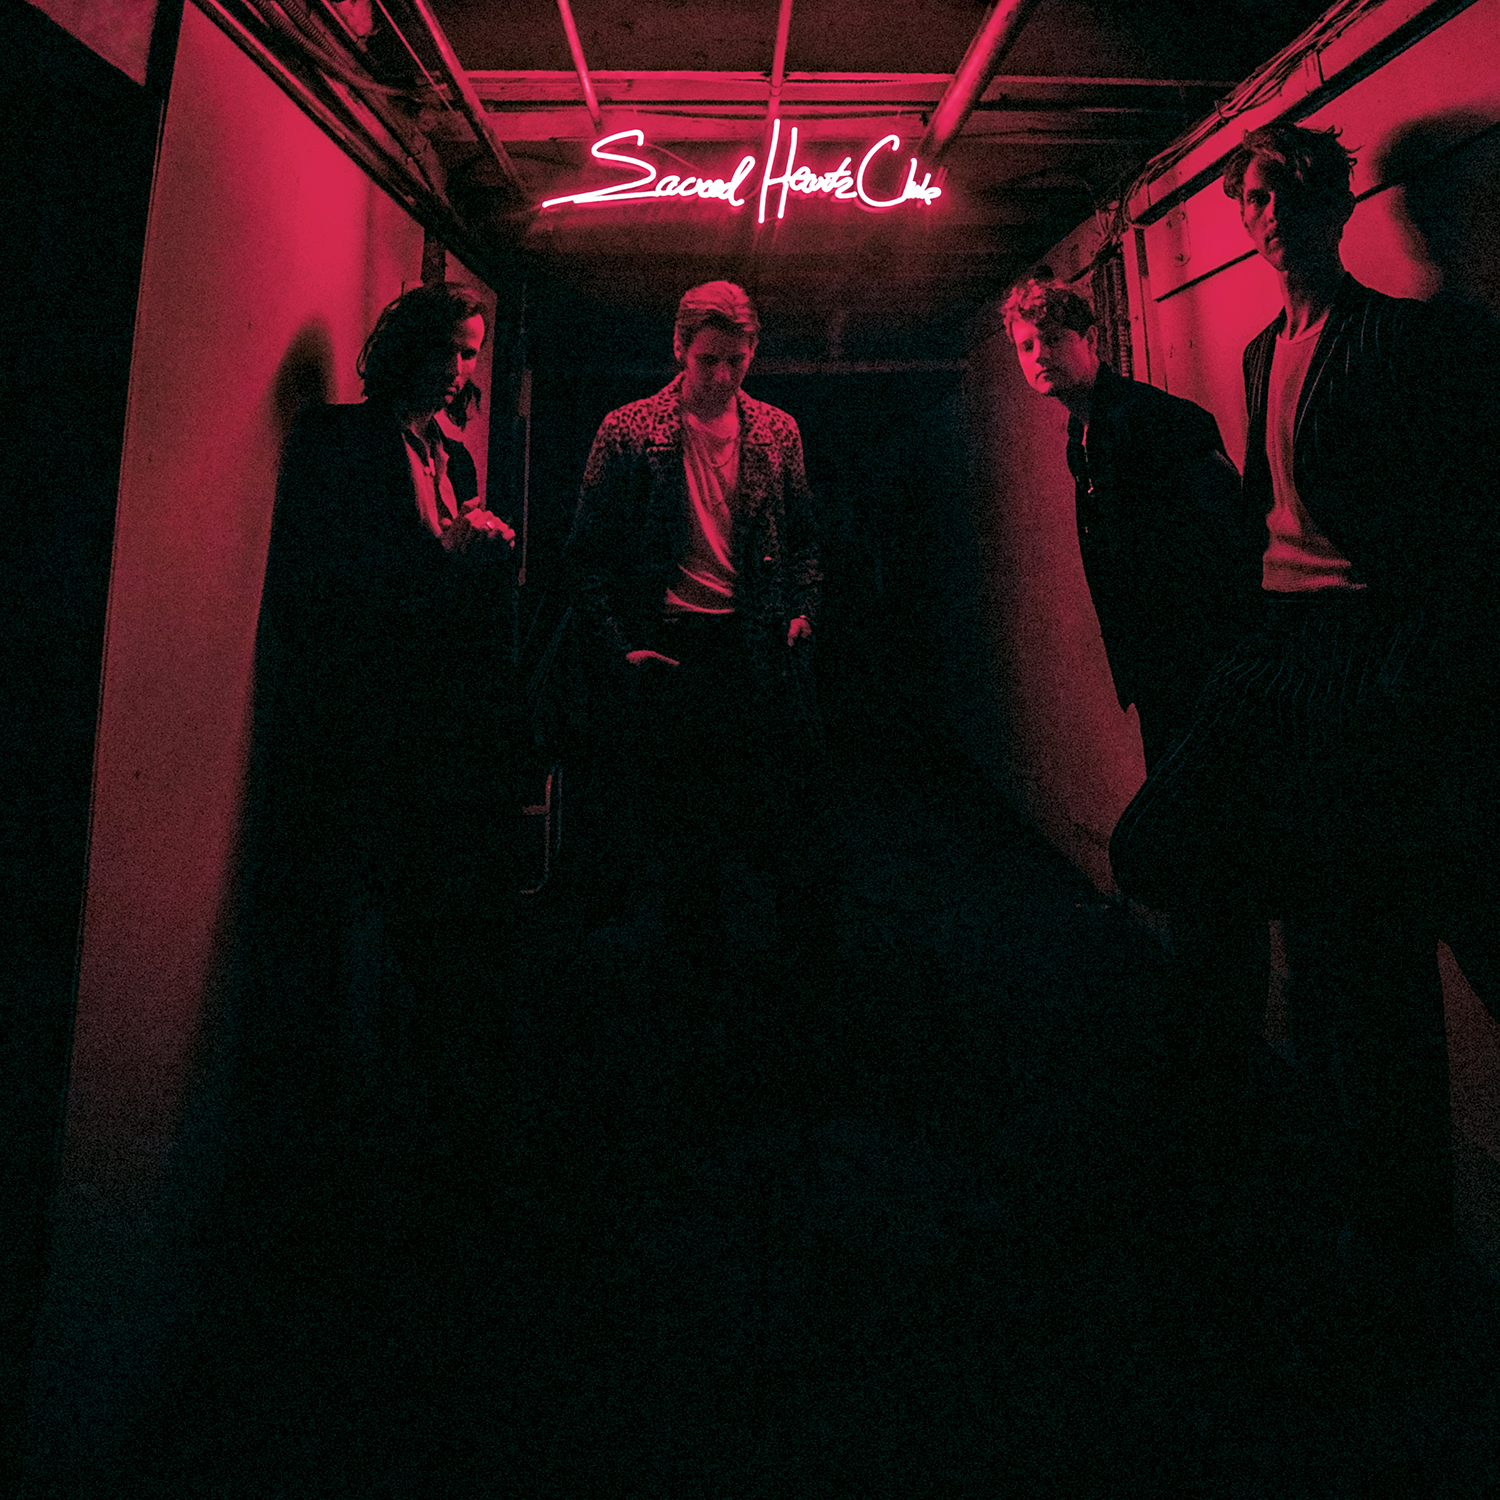 album artwork Foster the People announce new album, Sacred Hearts Club, plus North American tour dates